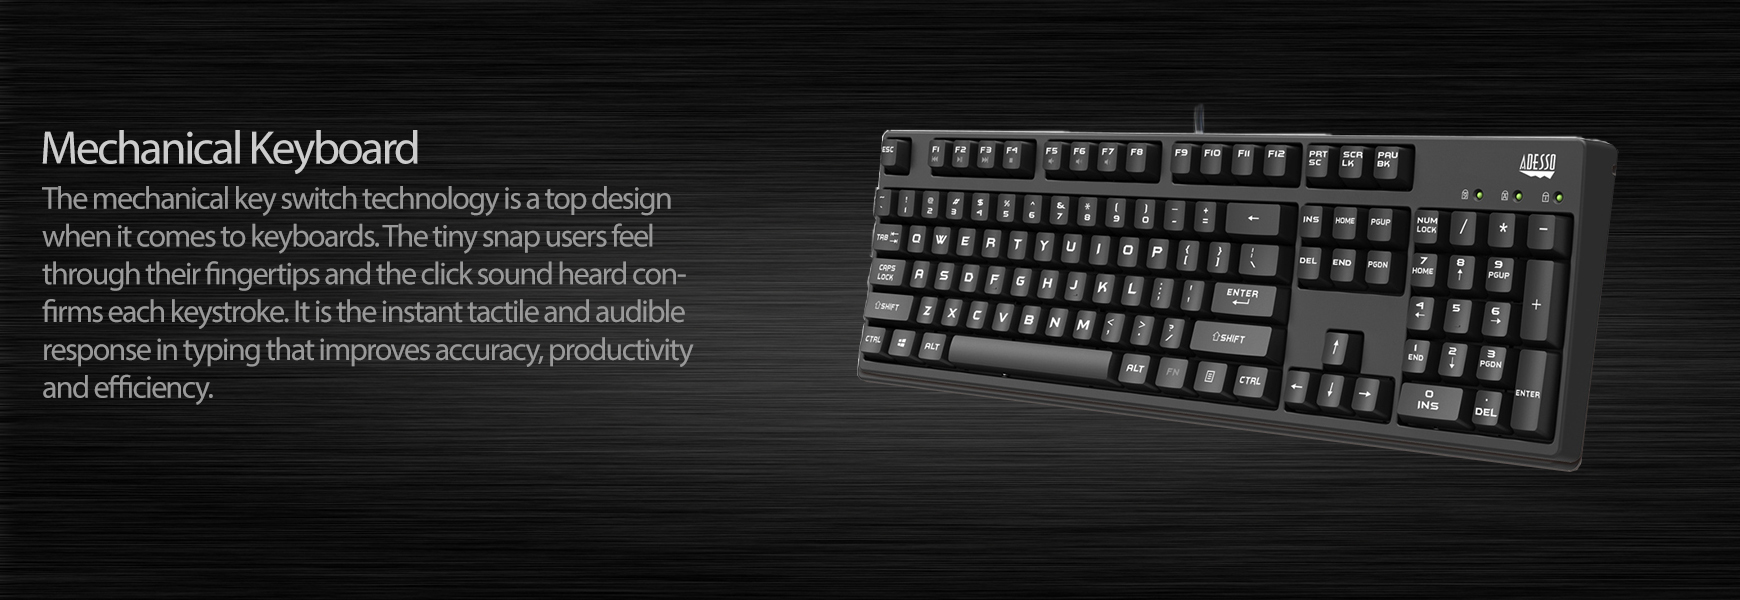 Full Size Mechanical Gaming Keyboard Adesso Inc Your Input Device Specialist